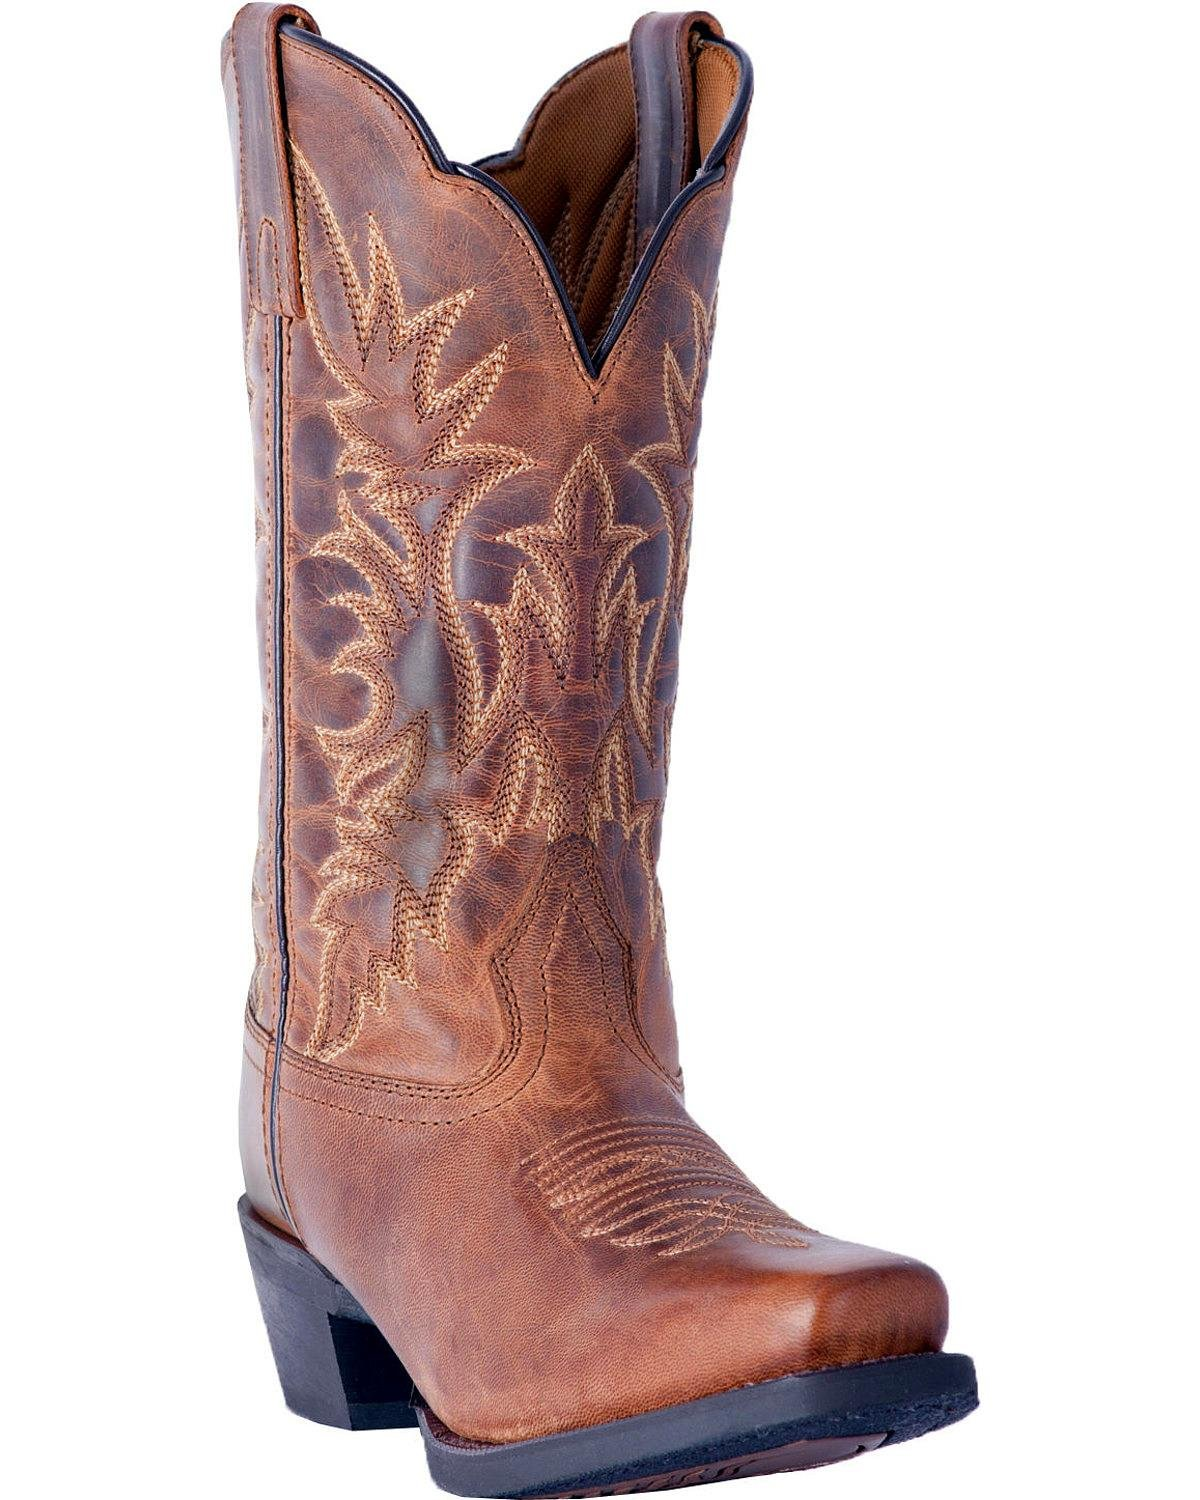 Laredo Women's Malinda Cowgirl Boot Square Toe - 51134 B0785MHK2V 6.5 B(M) US|Tan